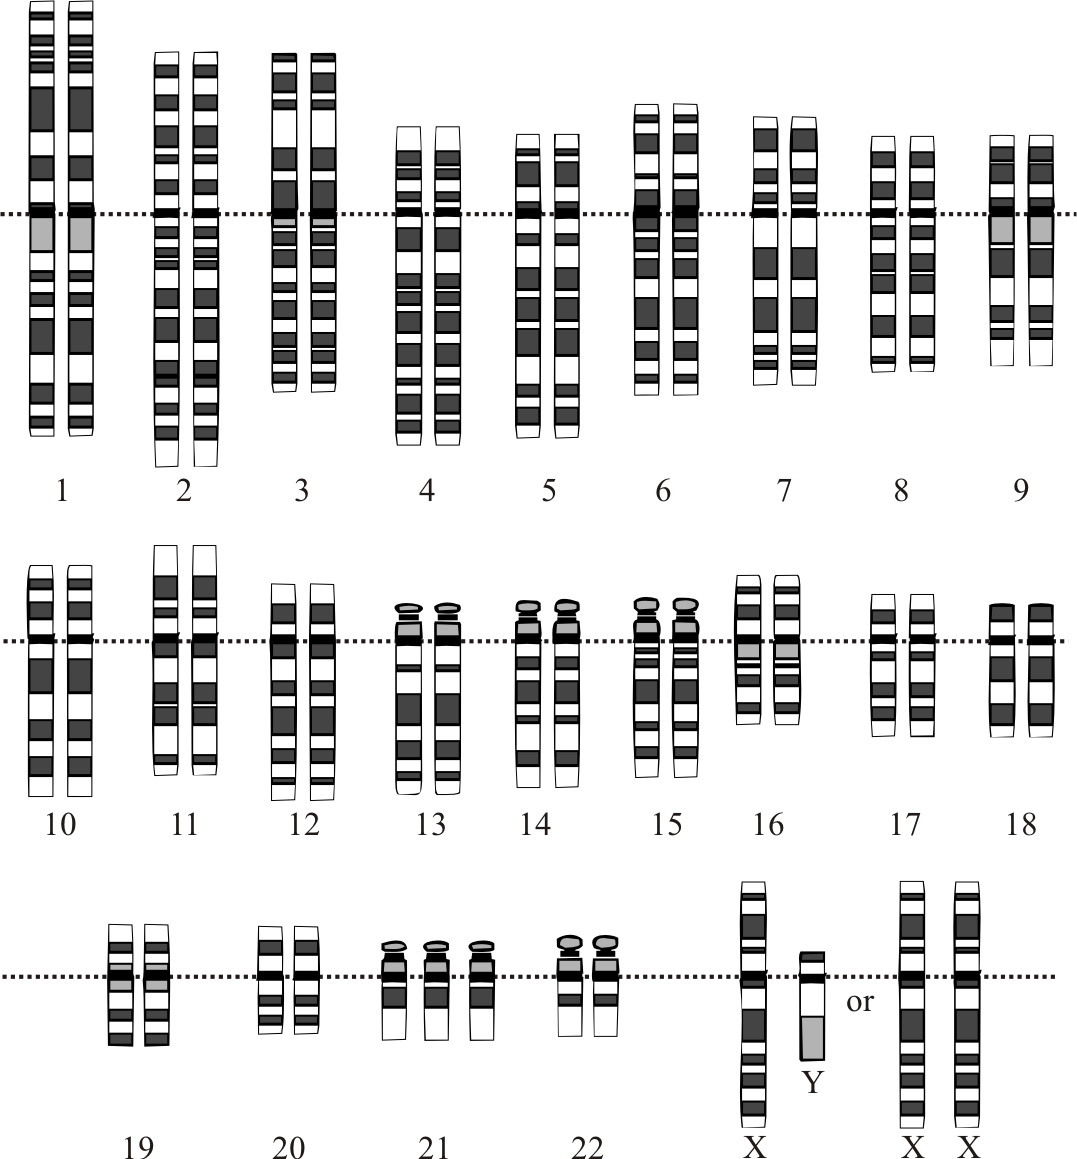 worksheet Karyotype Worksheet karyotype worksheet cut and paste downs syndrome psychology wiki fandom powered by wikia worksheet